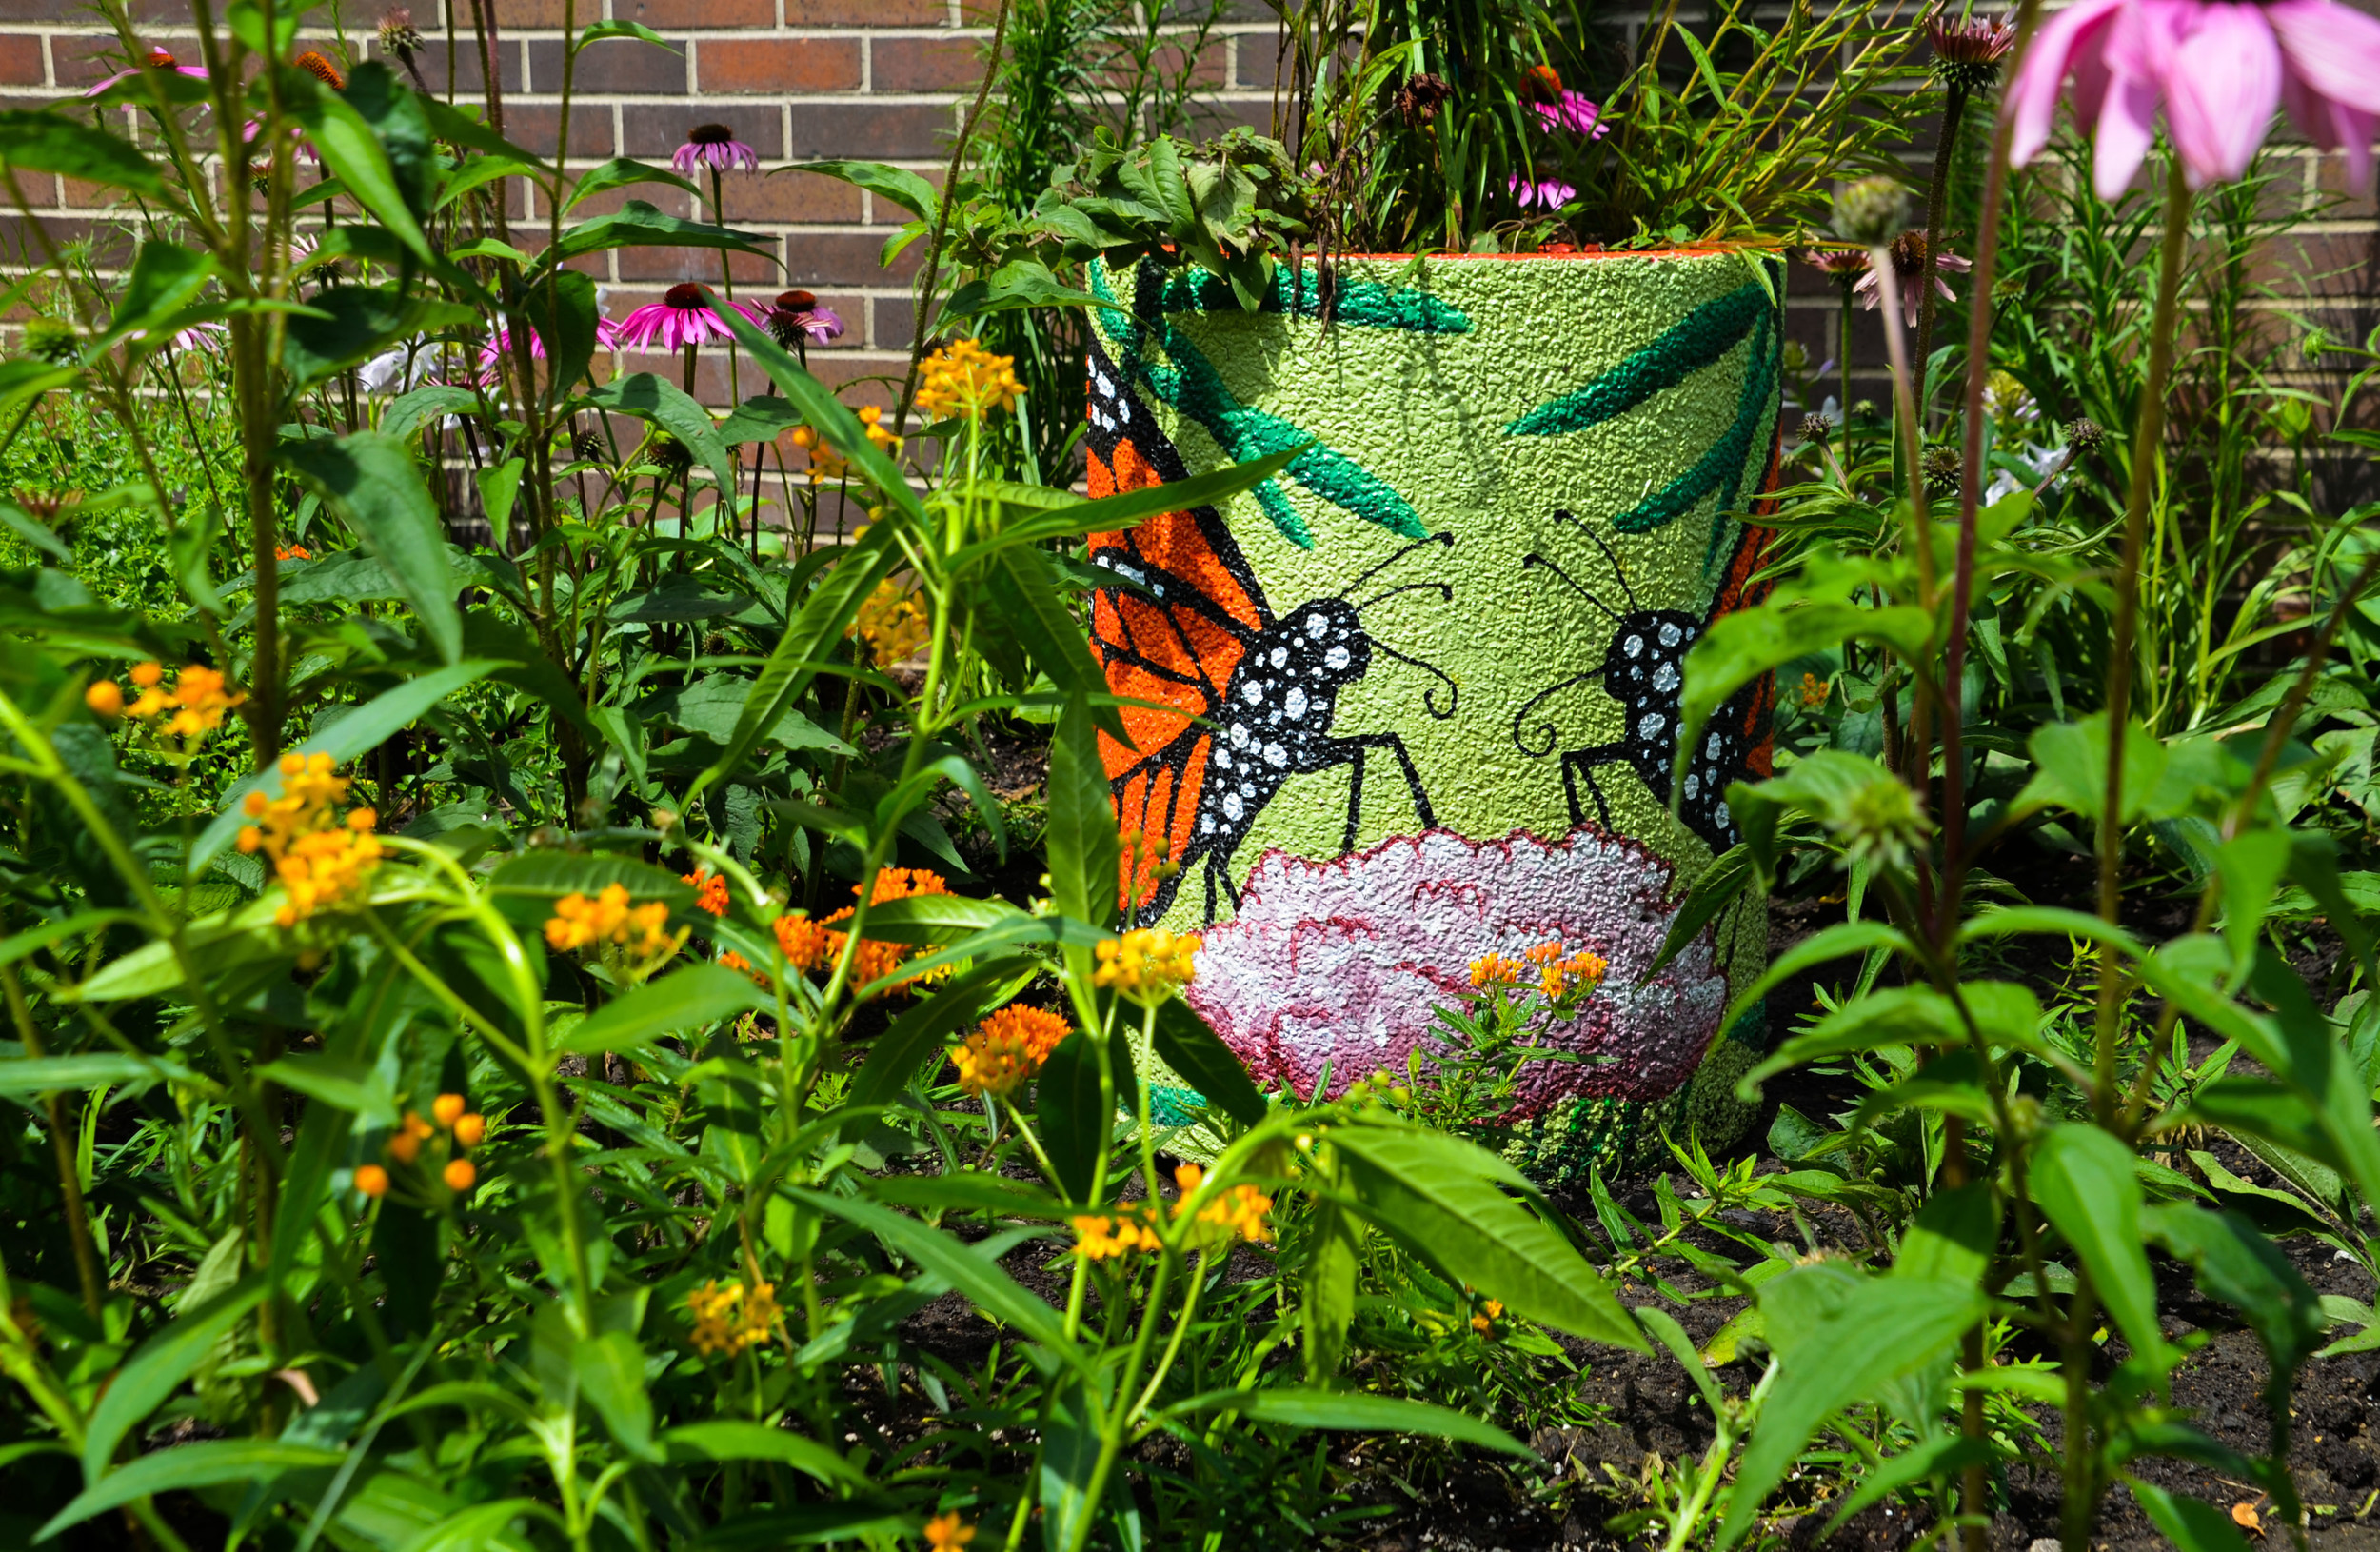 Pollinator urn picture with Monarch butterfly